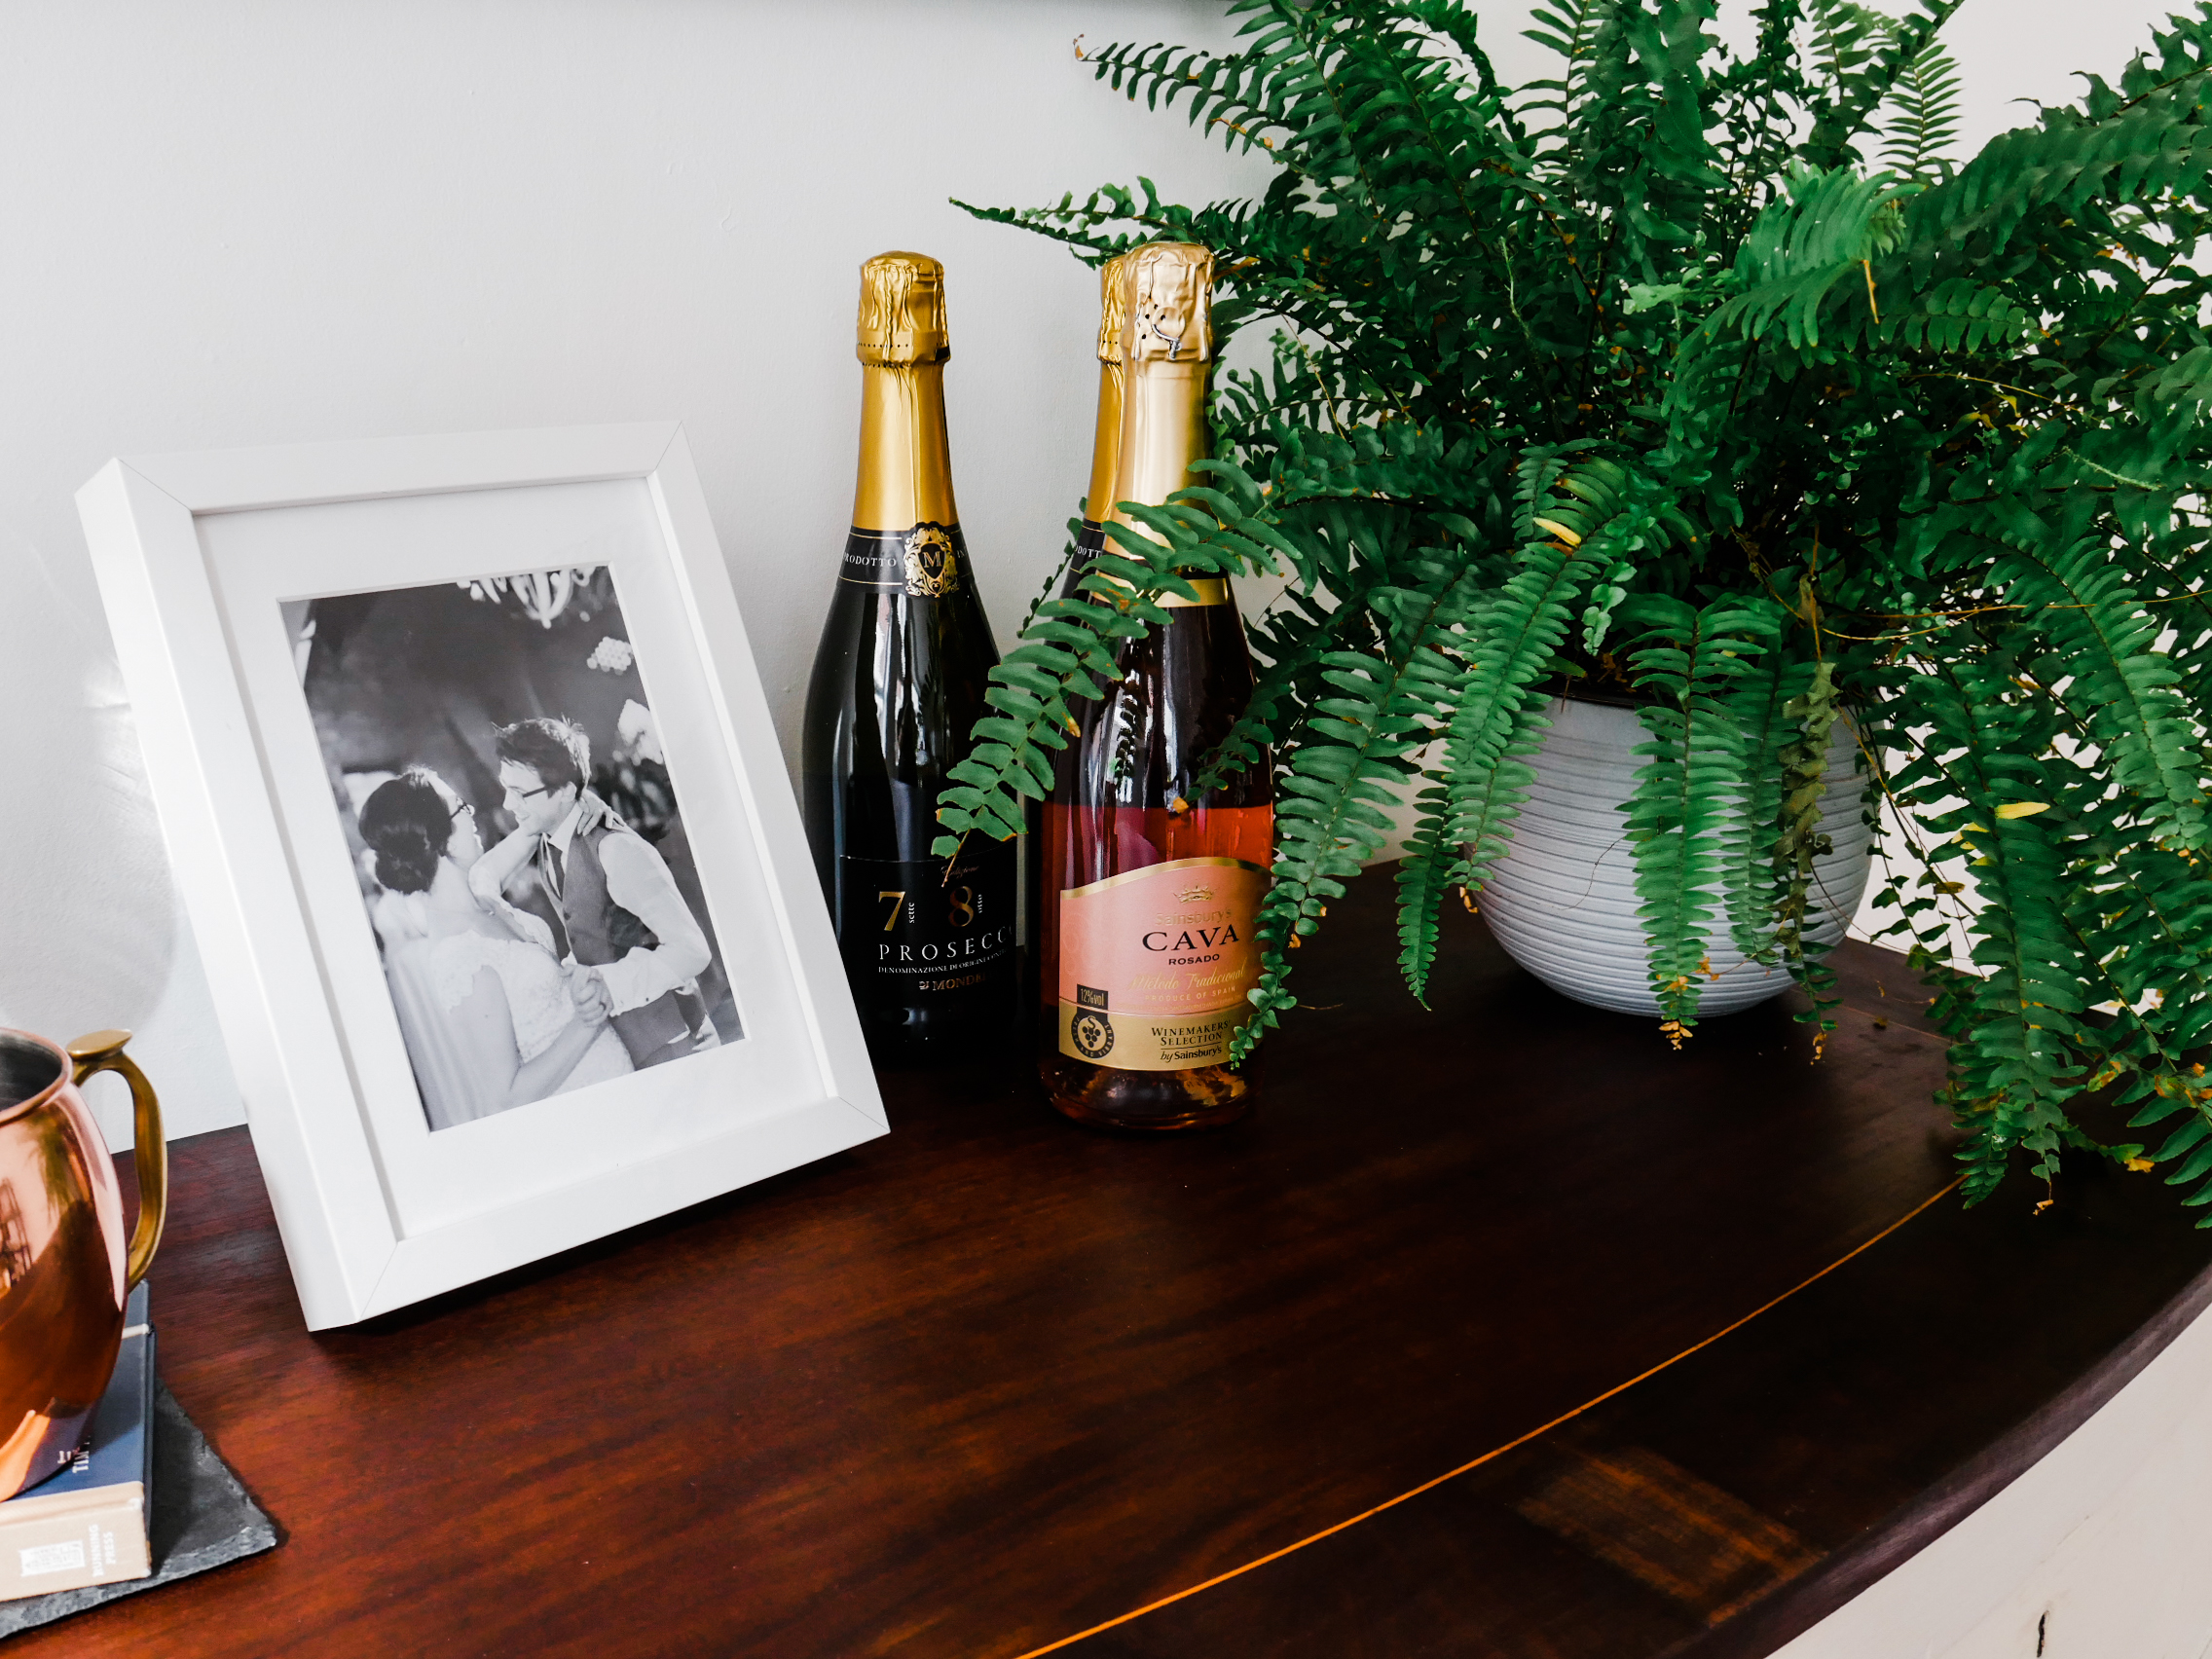 DIY Bar Cabinet Upcycle Project & Pimm's RecipeHow we upcycled a chest of drawers into a bar cabinet with a wine rack, plus a delicious British cocktail, perfect for summertime